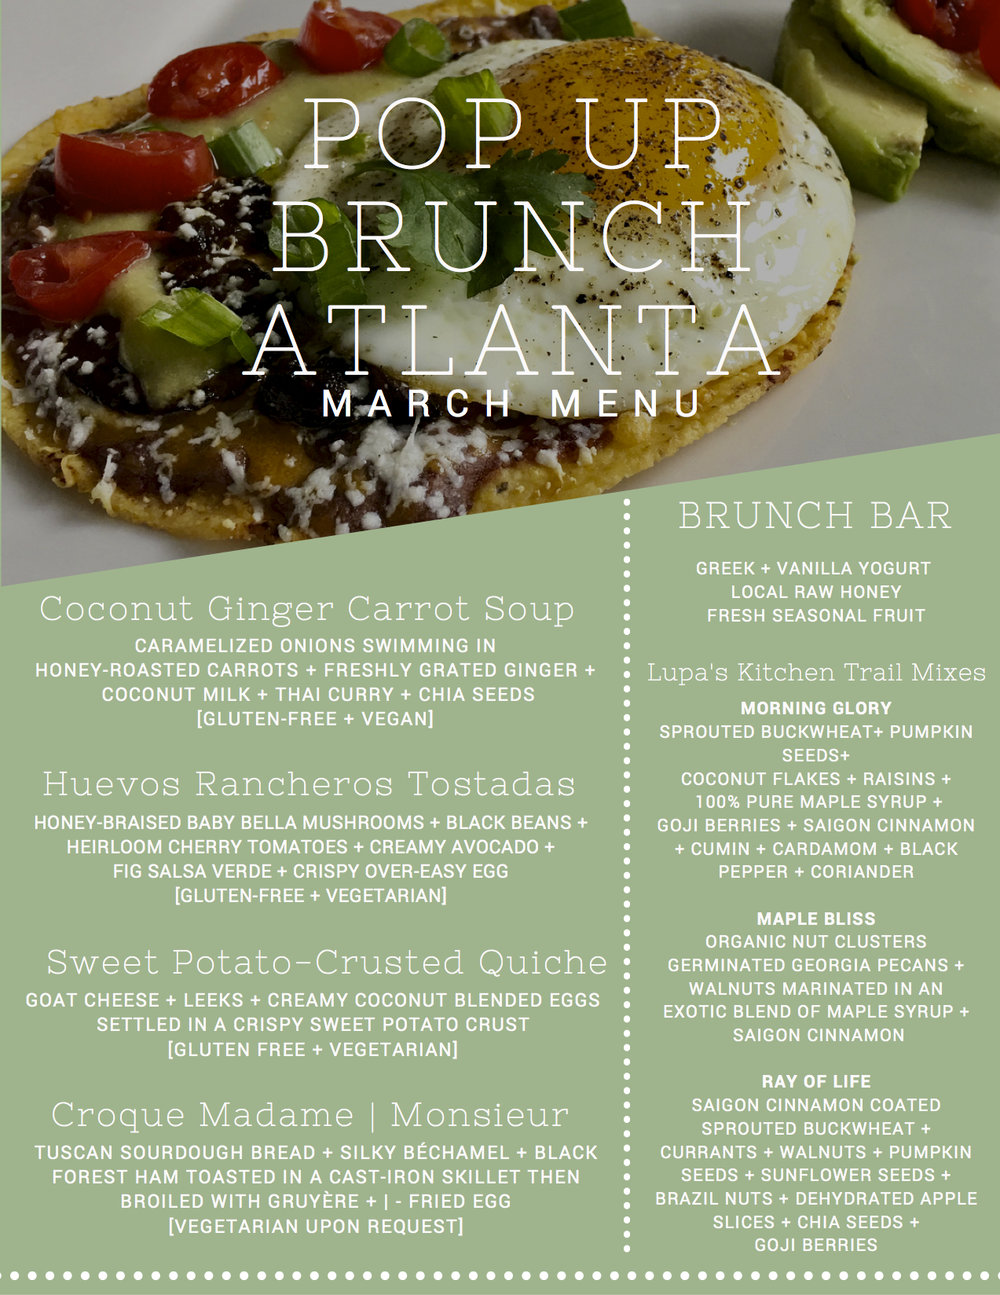 #PopUpBrunchAtlanta March Menu